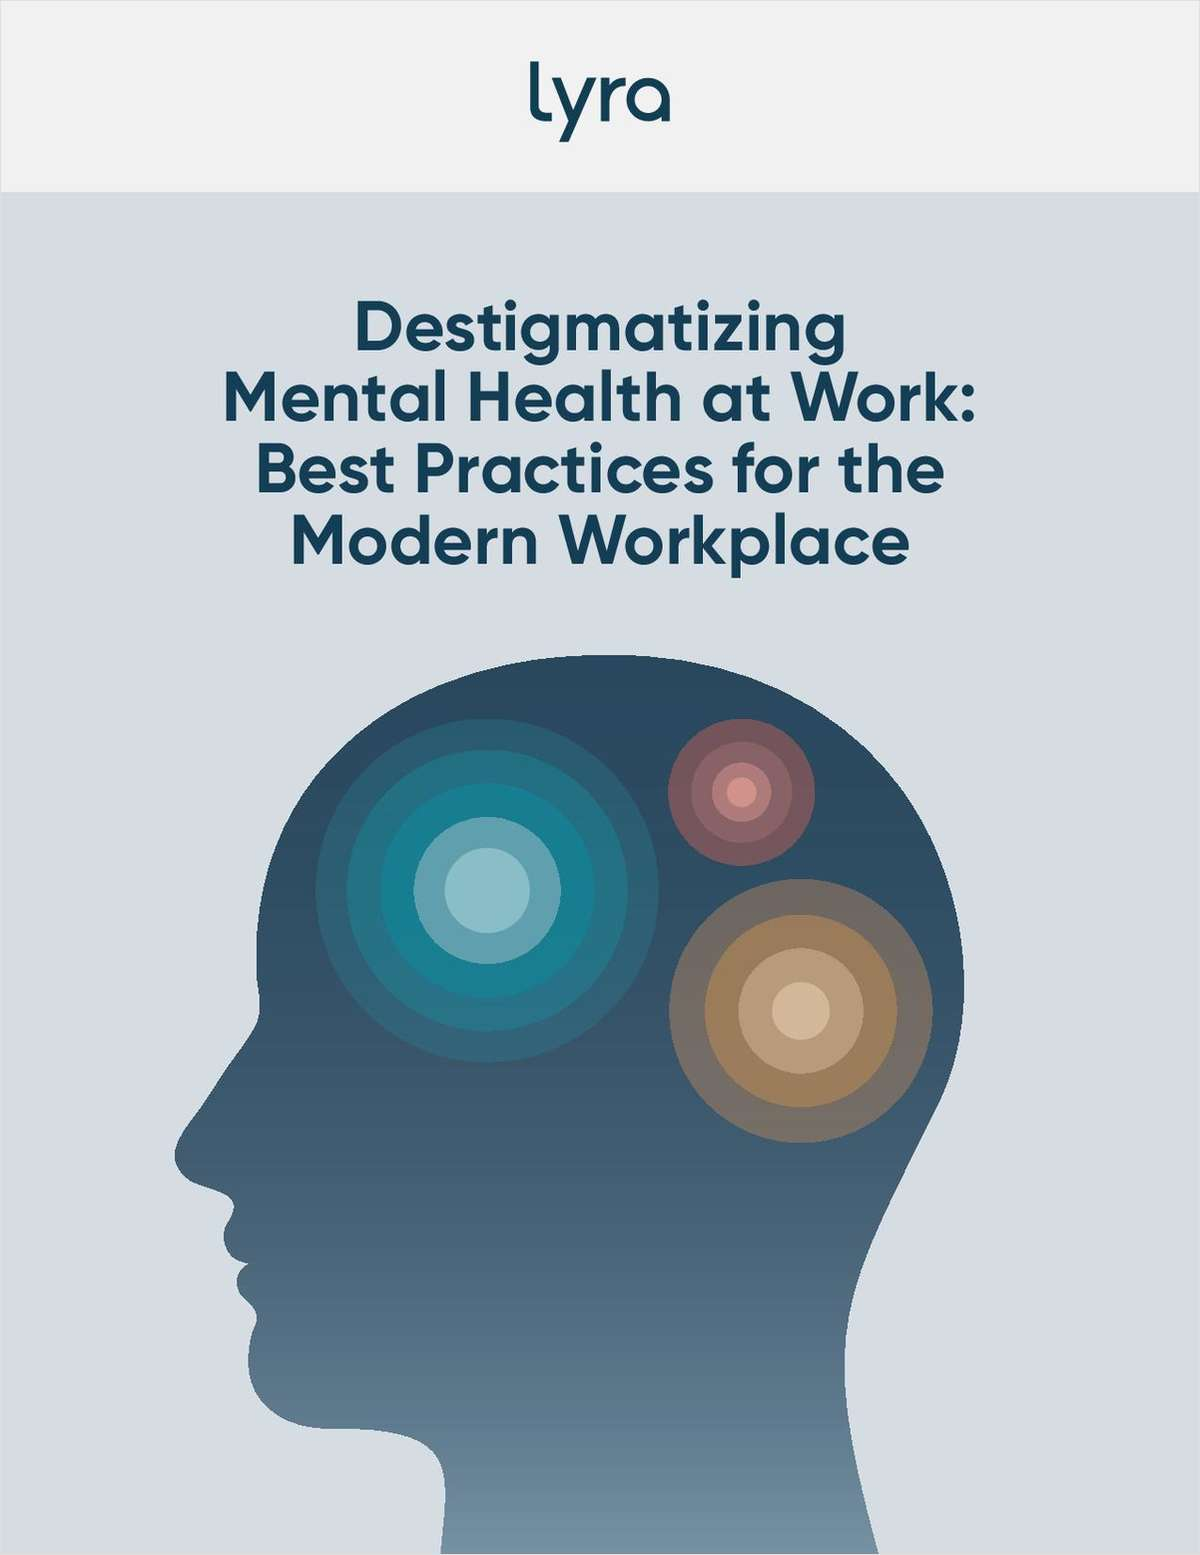 Destigmatizing Mental Health at Work: Best Practices for the Modern Workplace